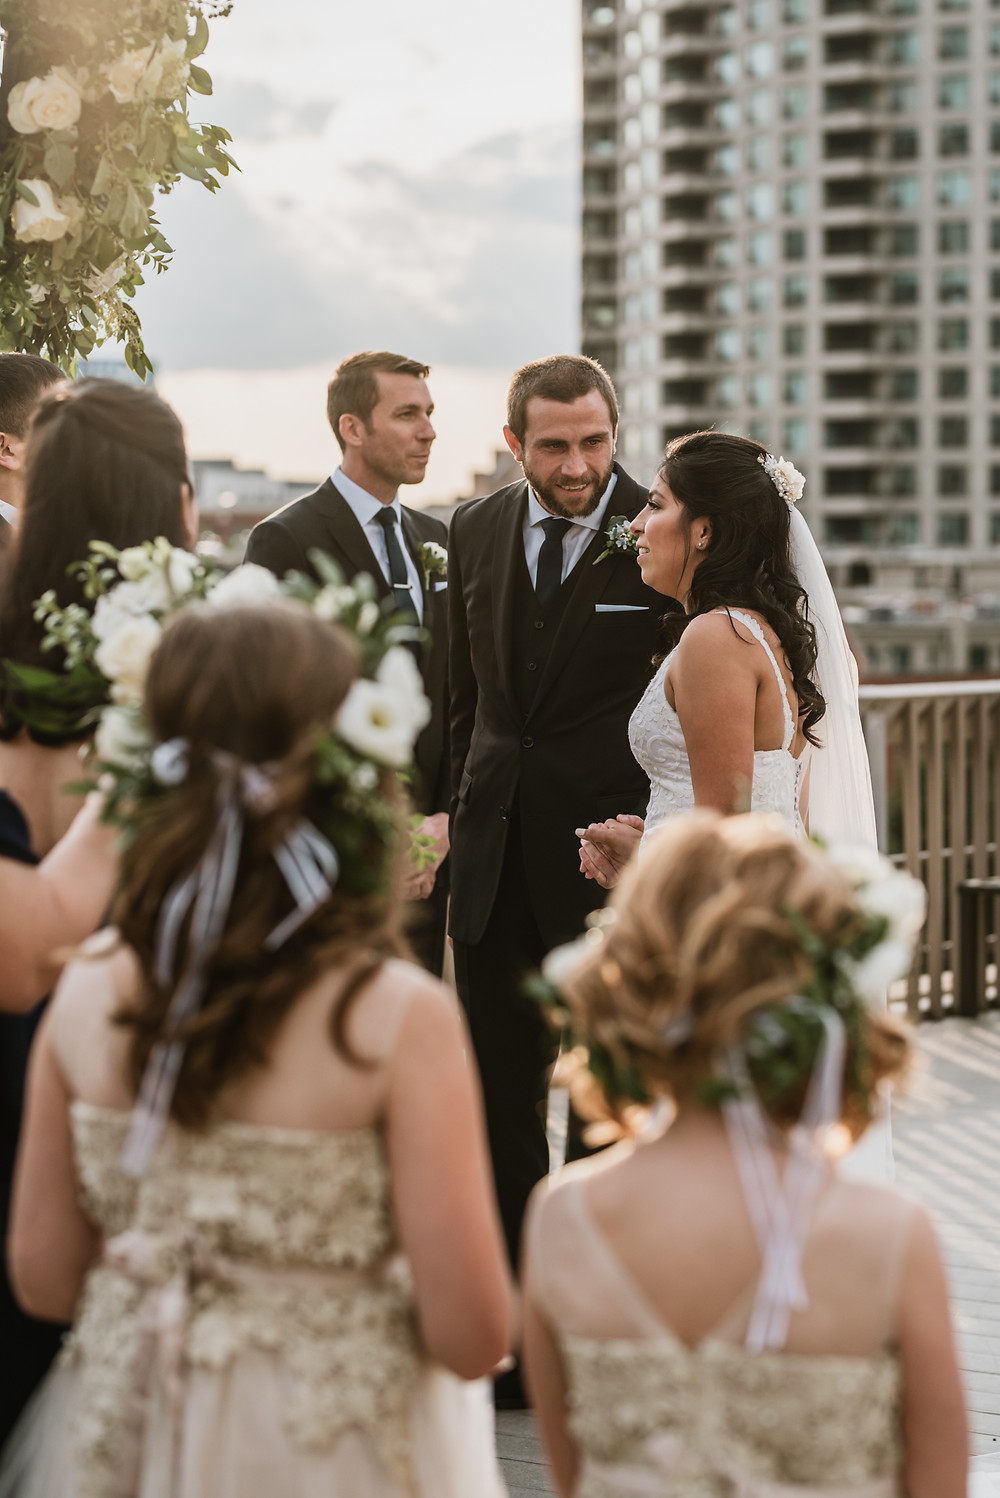 East Bank Club Rooftop Wedding in Chicago, IL